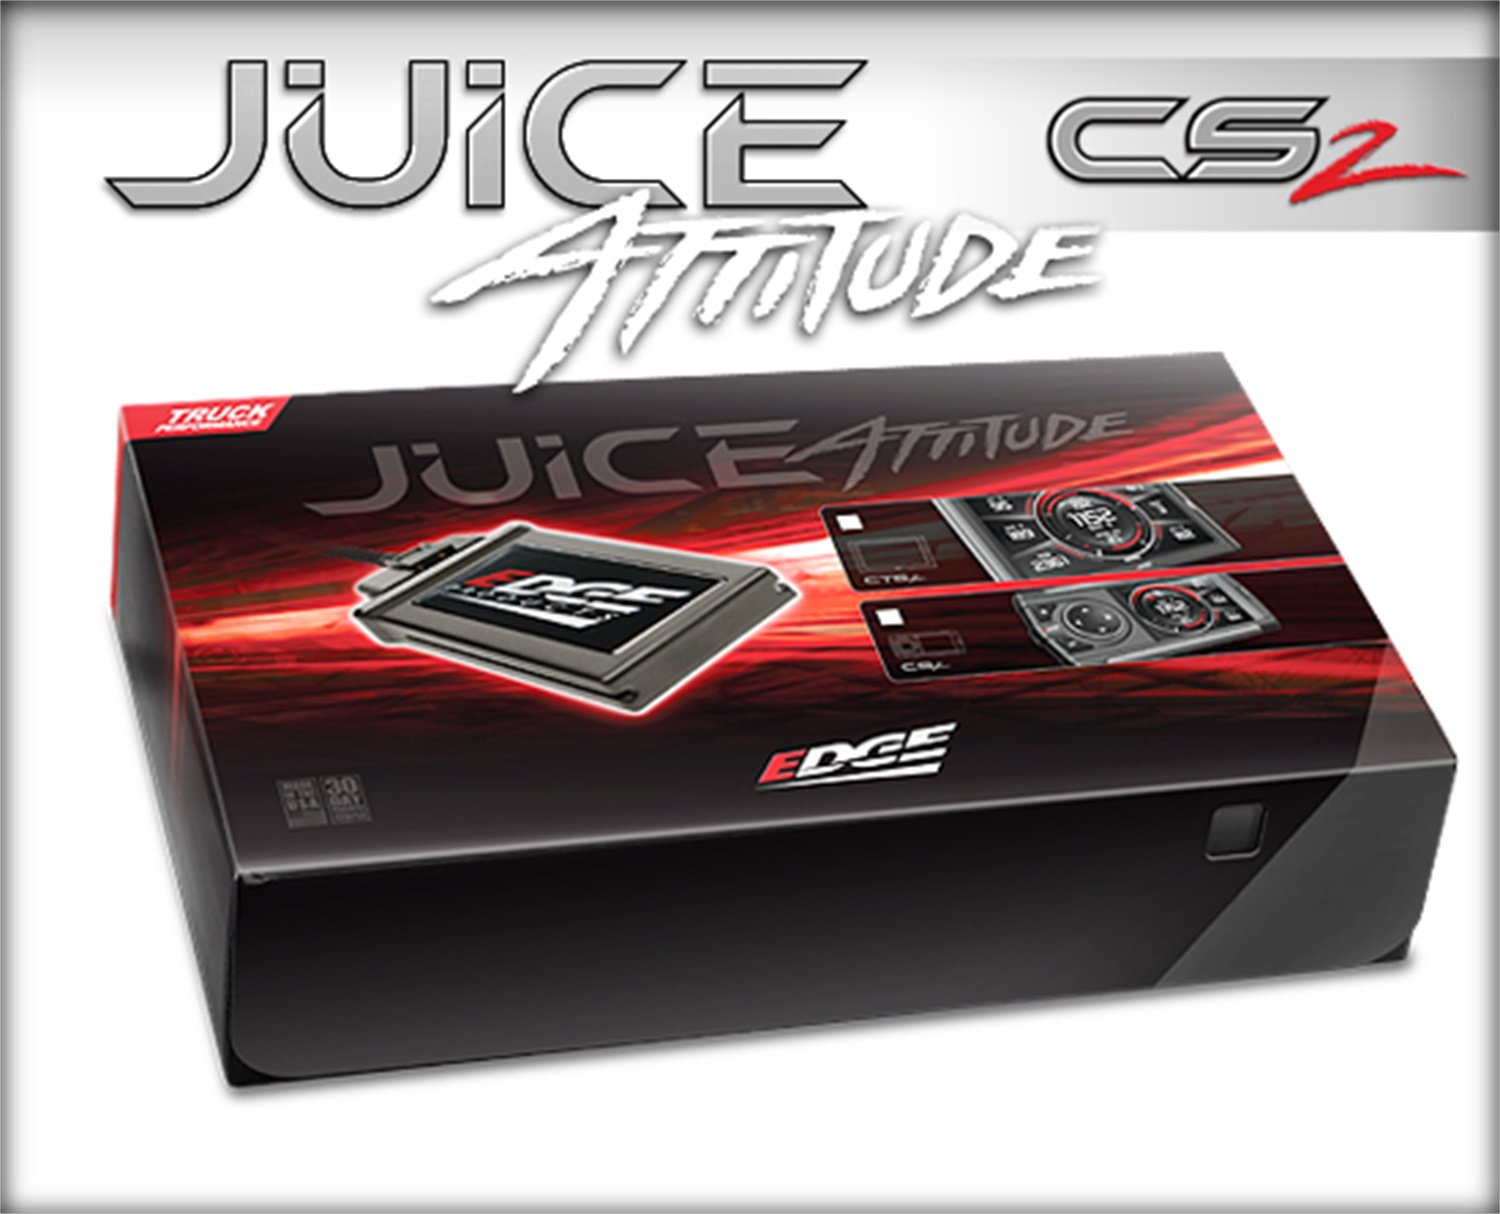 Edge Products 11400 Juice w/Attitude CS2 Programmer